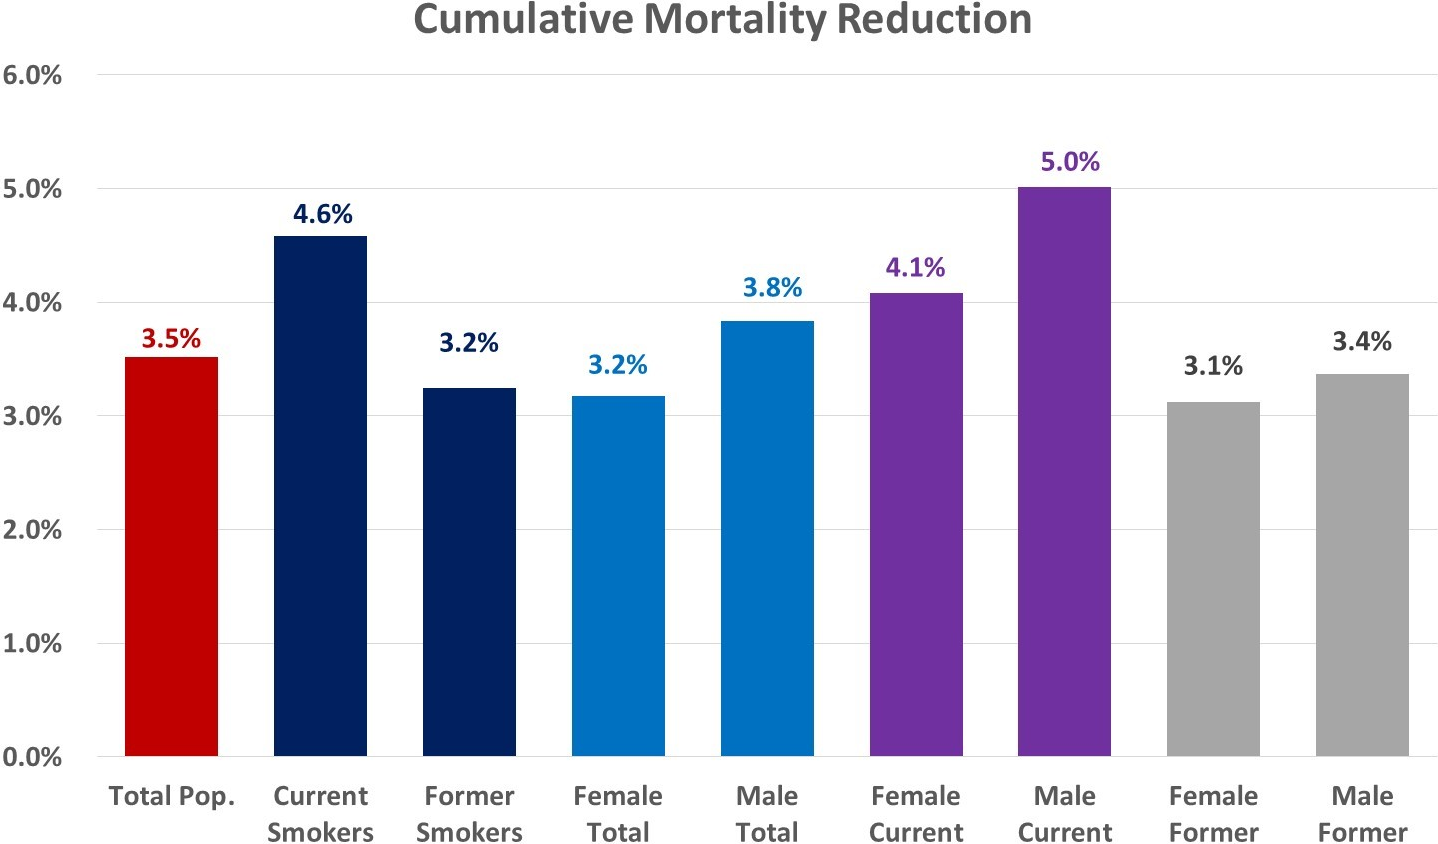 Projected cumulative mortality reduction stratified by smoker type and sex, 2016–2030.